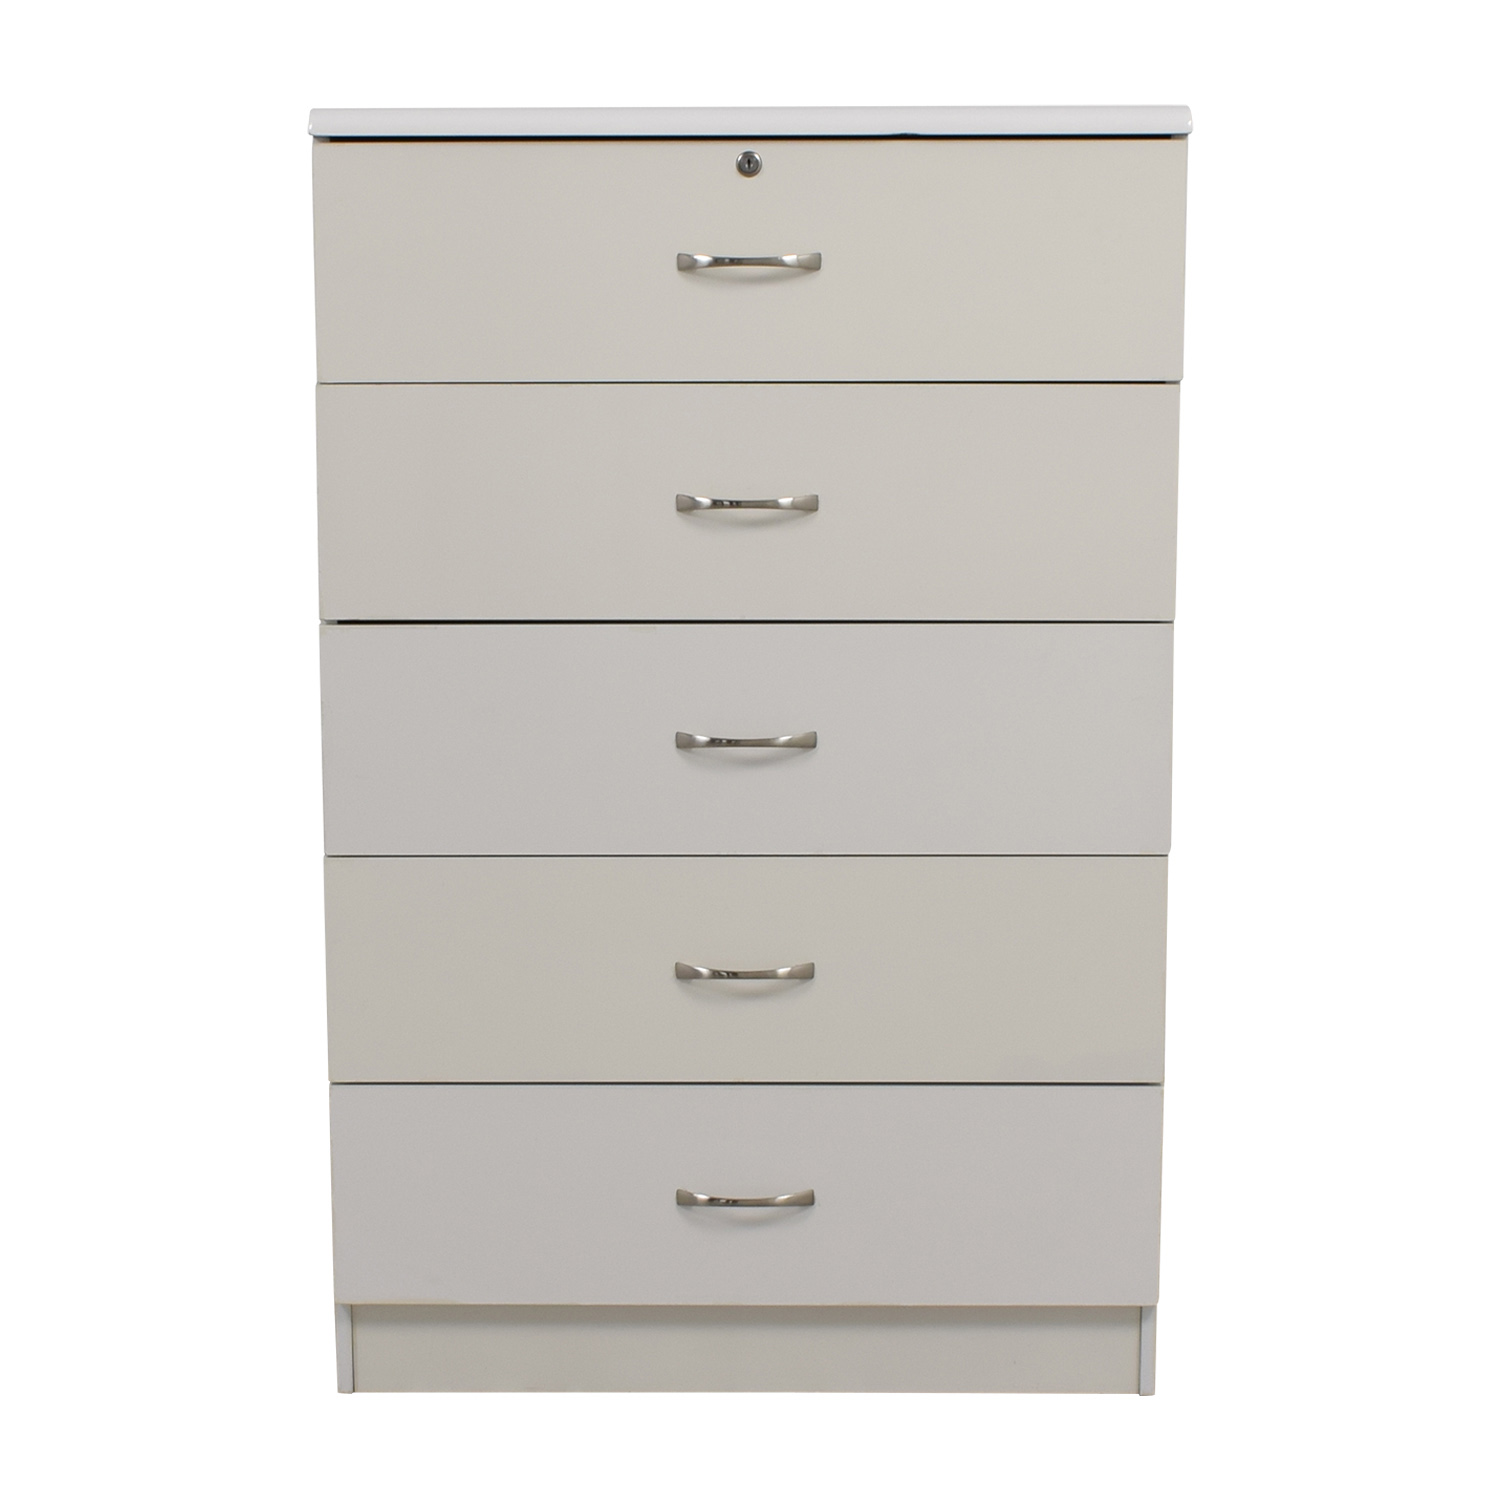 White Five-Drawer Dresser used